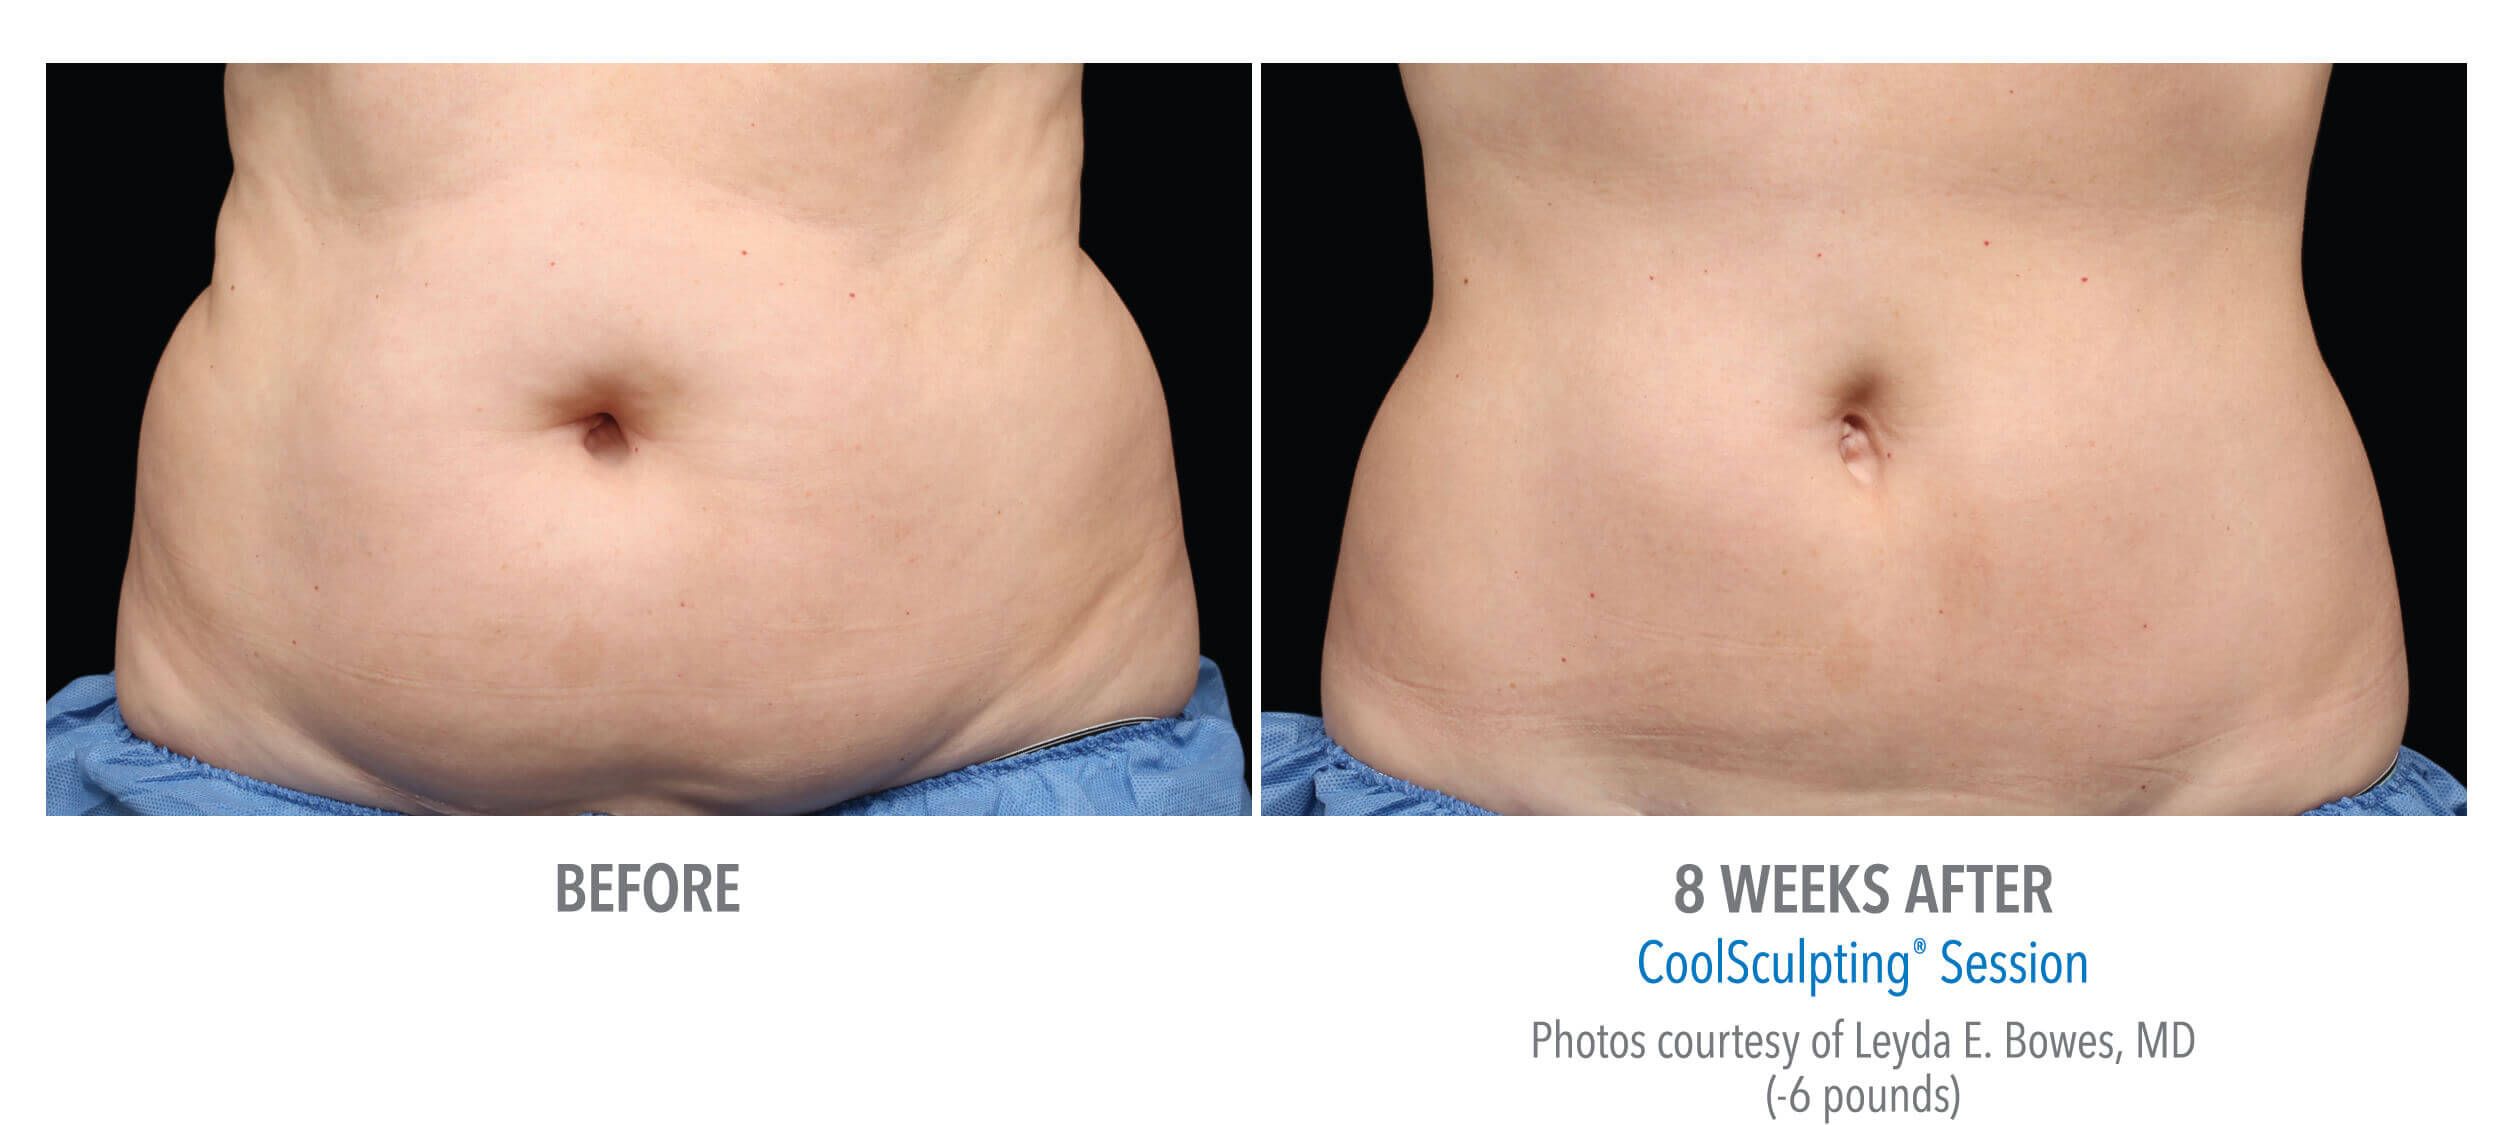 CoolSculpting Belly Fat Before and After Photo